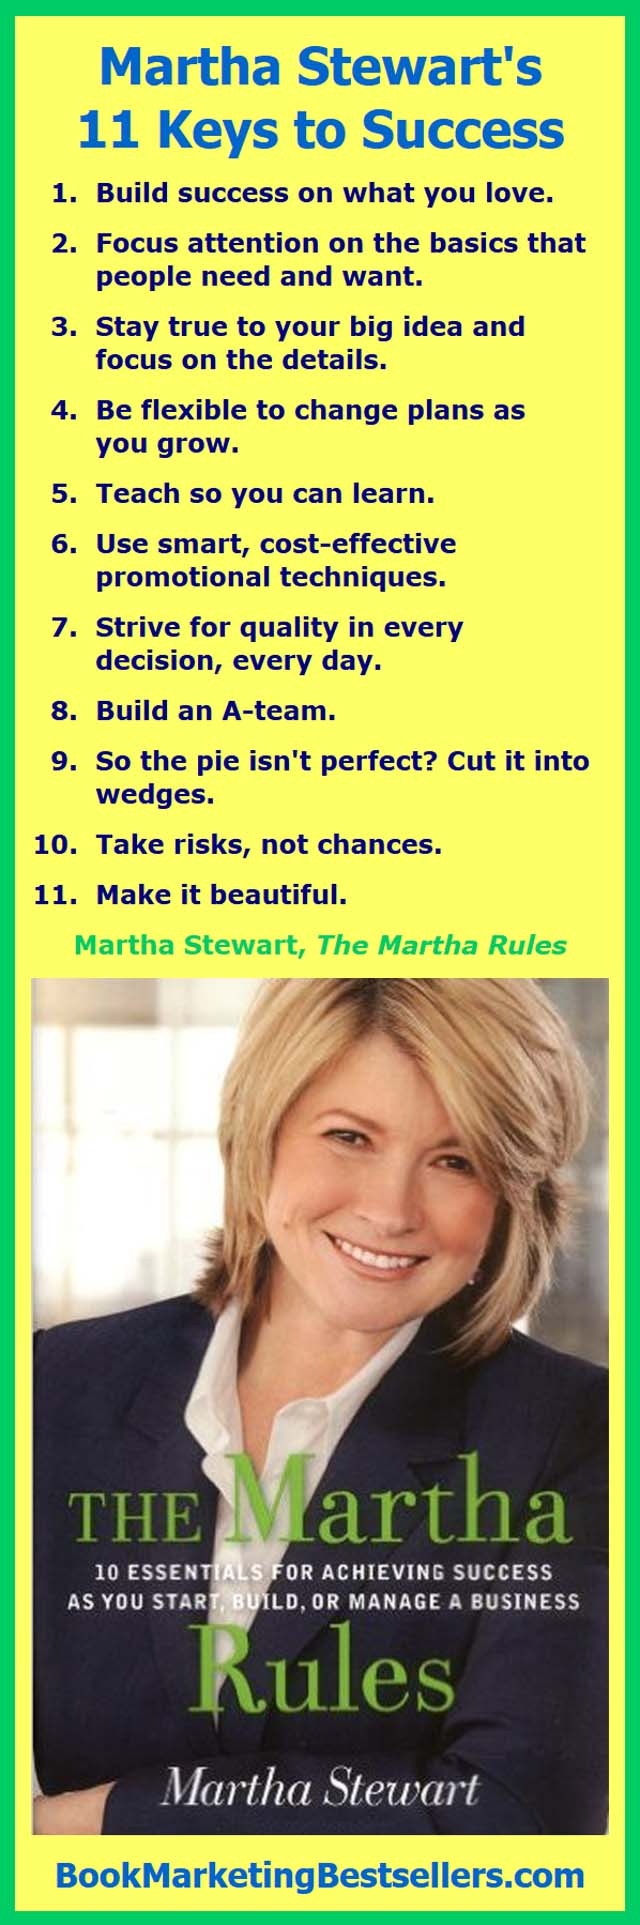 The Martha Rules of Success